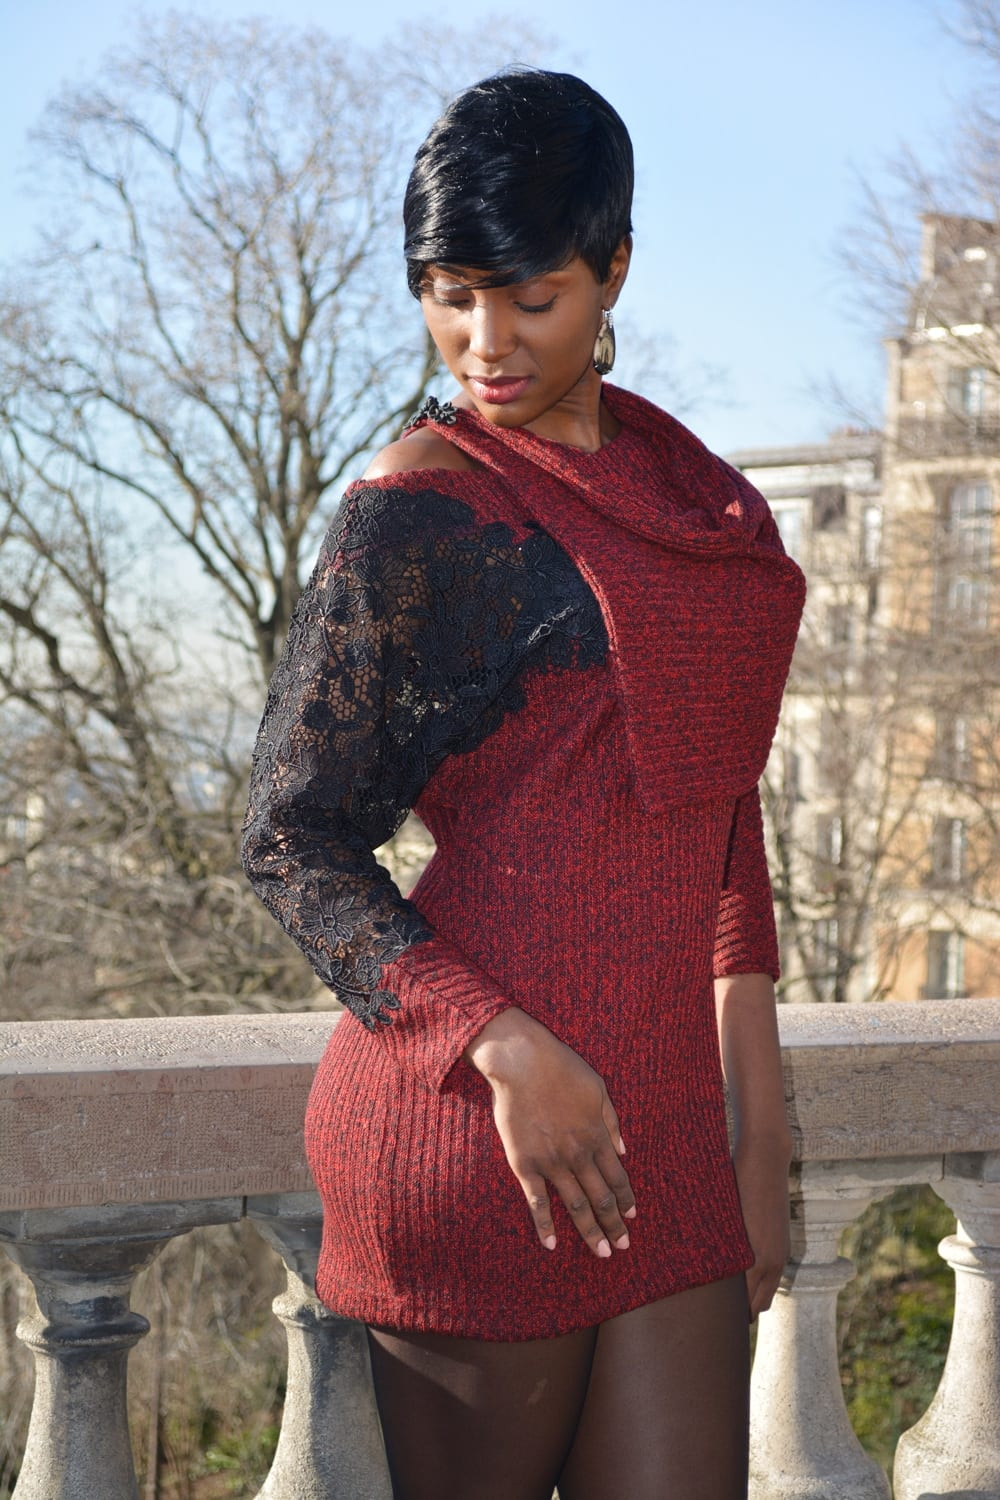 Fashion Paris. New fall winter collection by the fashion designer Erik Schaix Paris. Nice red dress with sleeve lace.